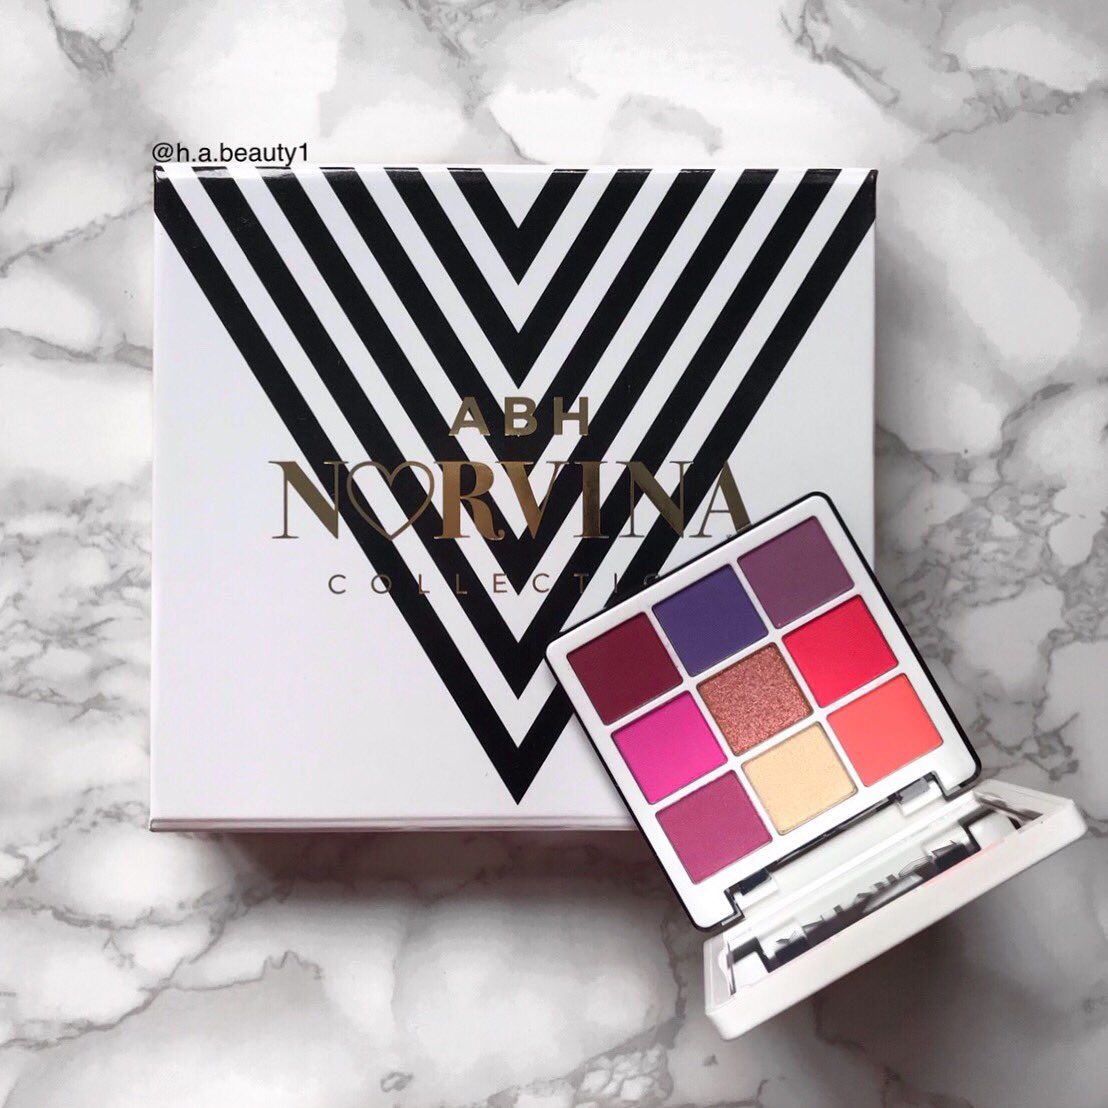 Here is the @norvina1 mini volume 1 palette, it's a really stunning palette and the packaging is amazing  . . @ABHcosmetics #abhprlist #thelist #abh #norvinamini #norvina #norvinapalette #norvinavol1 #eyeshadowpalette #motd #makeup4glam #makeupjunkie #makeupcollection #beautypic.twitter.com/SyRKzjhrsg